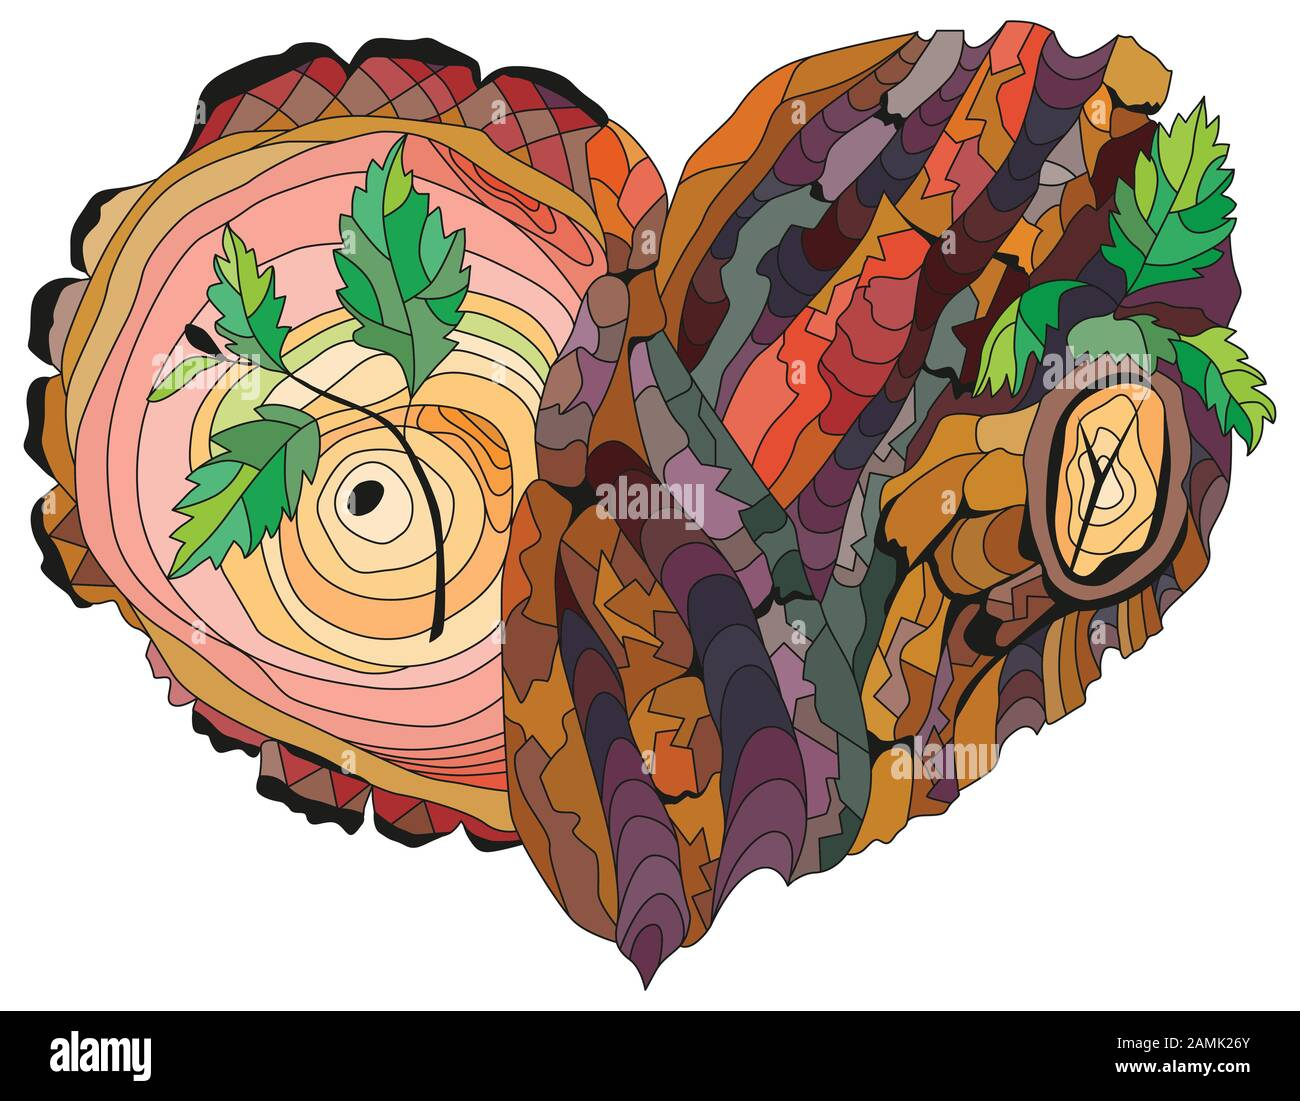 Bark Vector Vectors High Resolution Stock Photography And Images Alamy Cartoon wooden materials lumber firewood wood vector. https www alamy com vector adult coloring book textures with tree bark texture hand painted art design image339708963 html